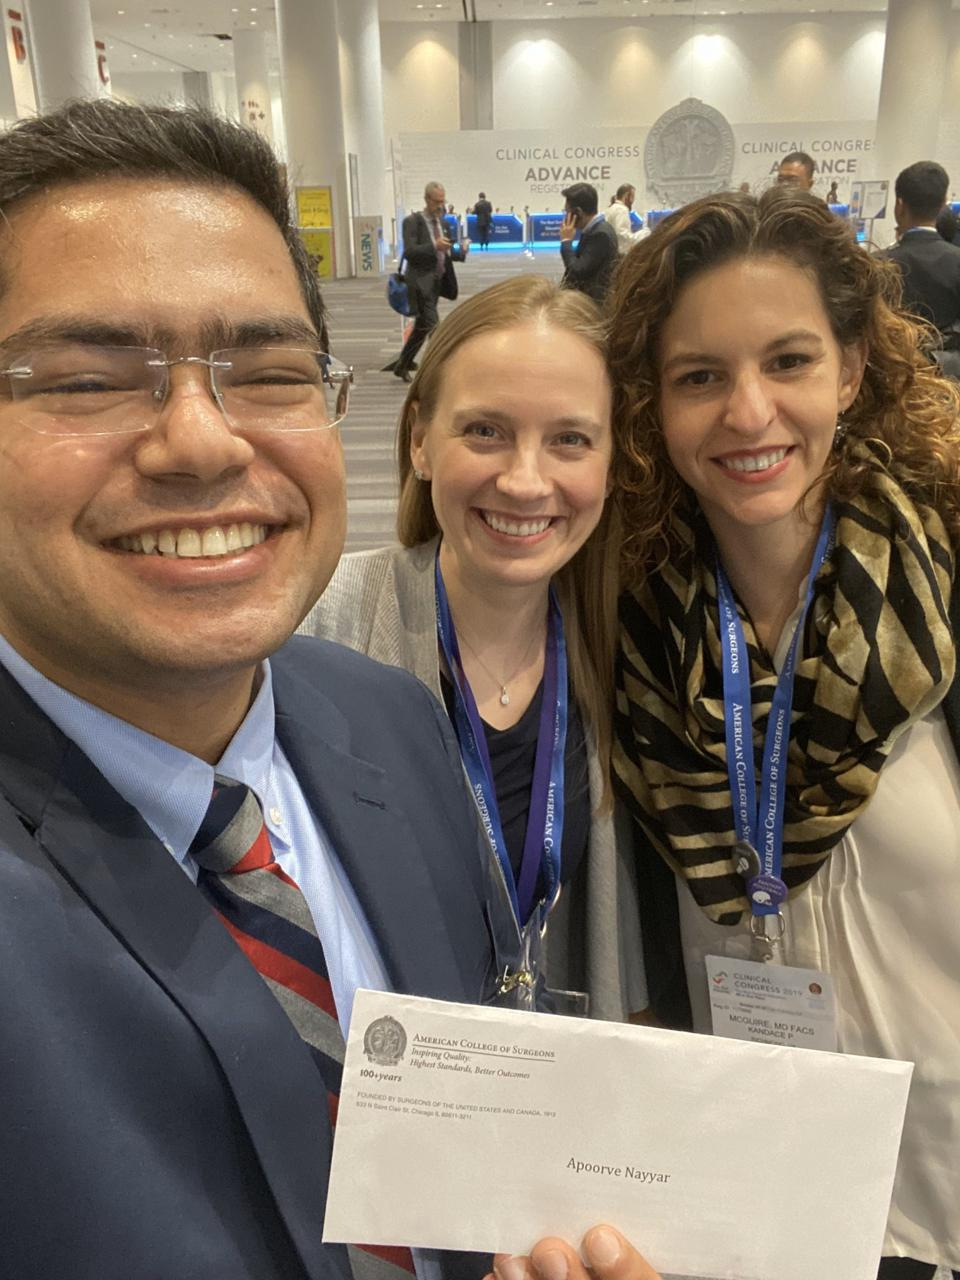 Authors of the study presented at the American College of Surgeons Clinical Congress in San Francisco this past week.